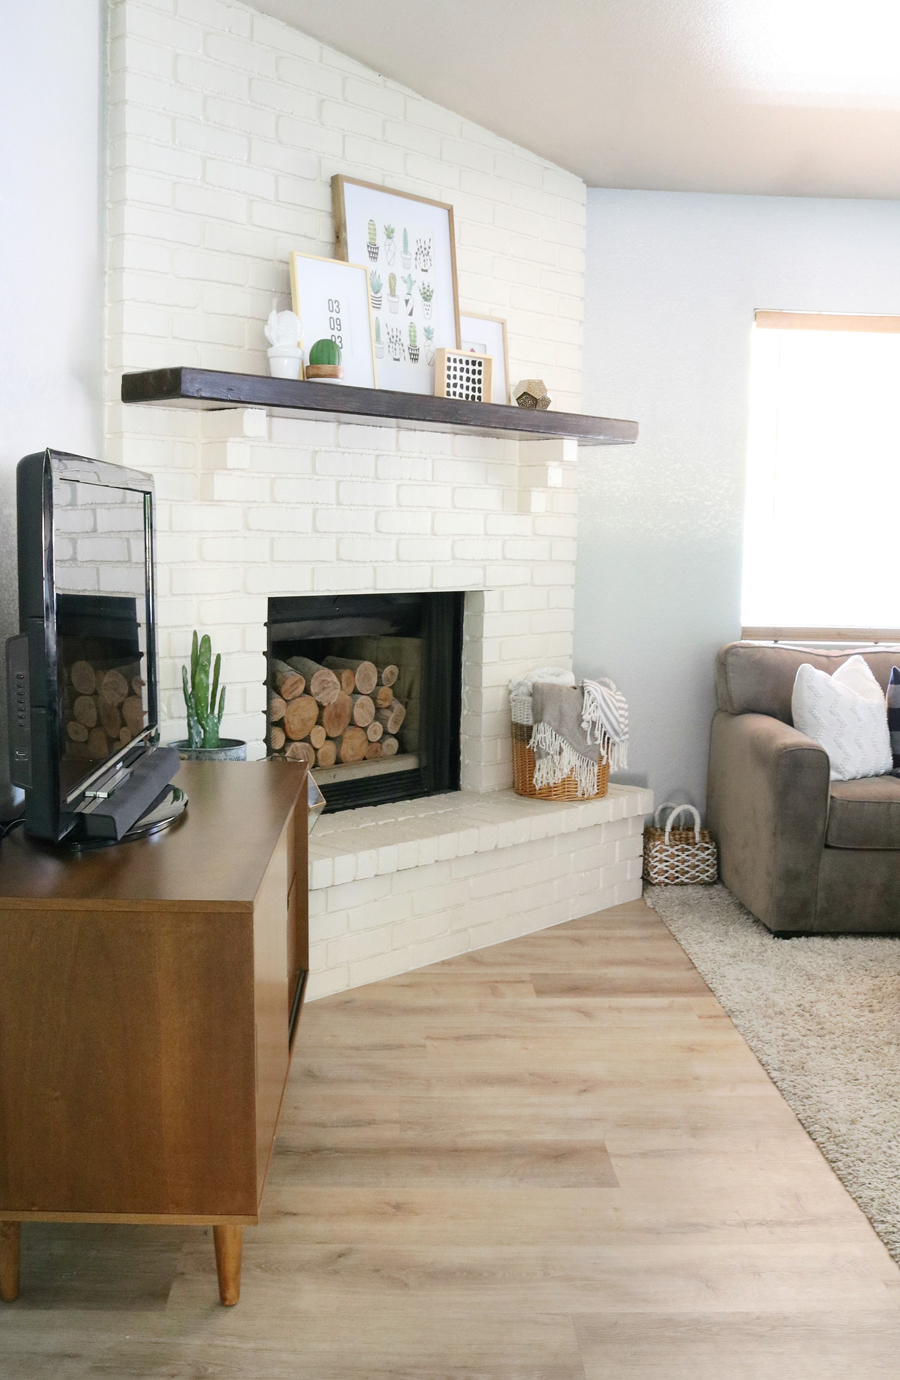 Family Room Refresh - Fireplace Decor